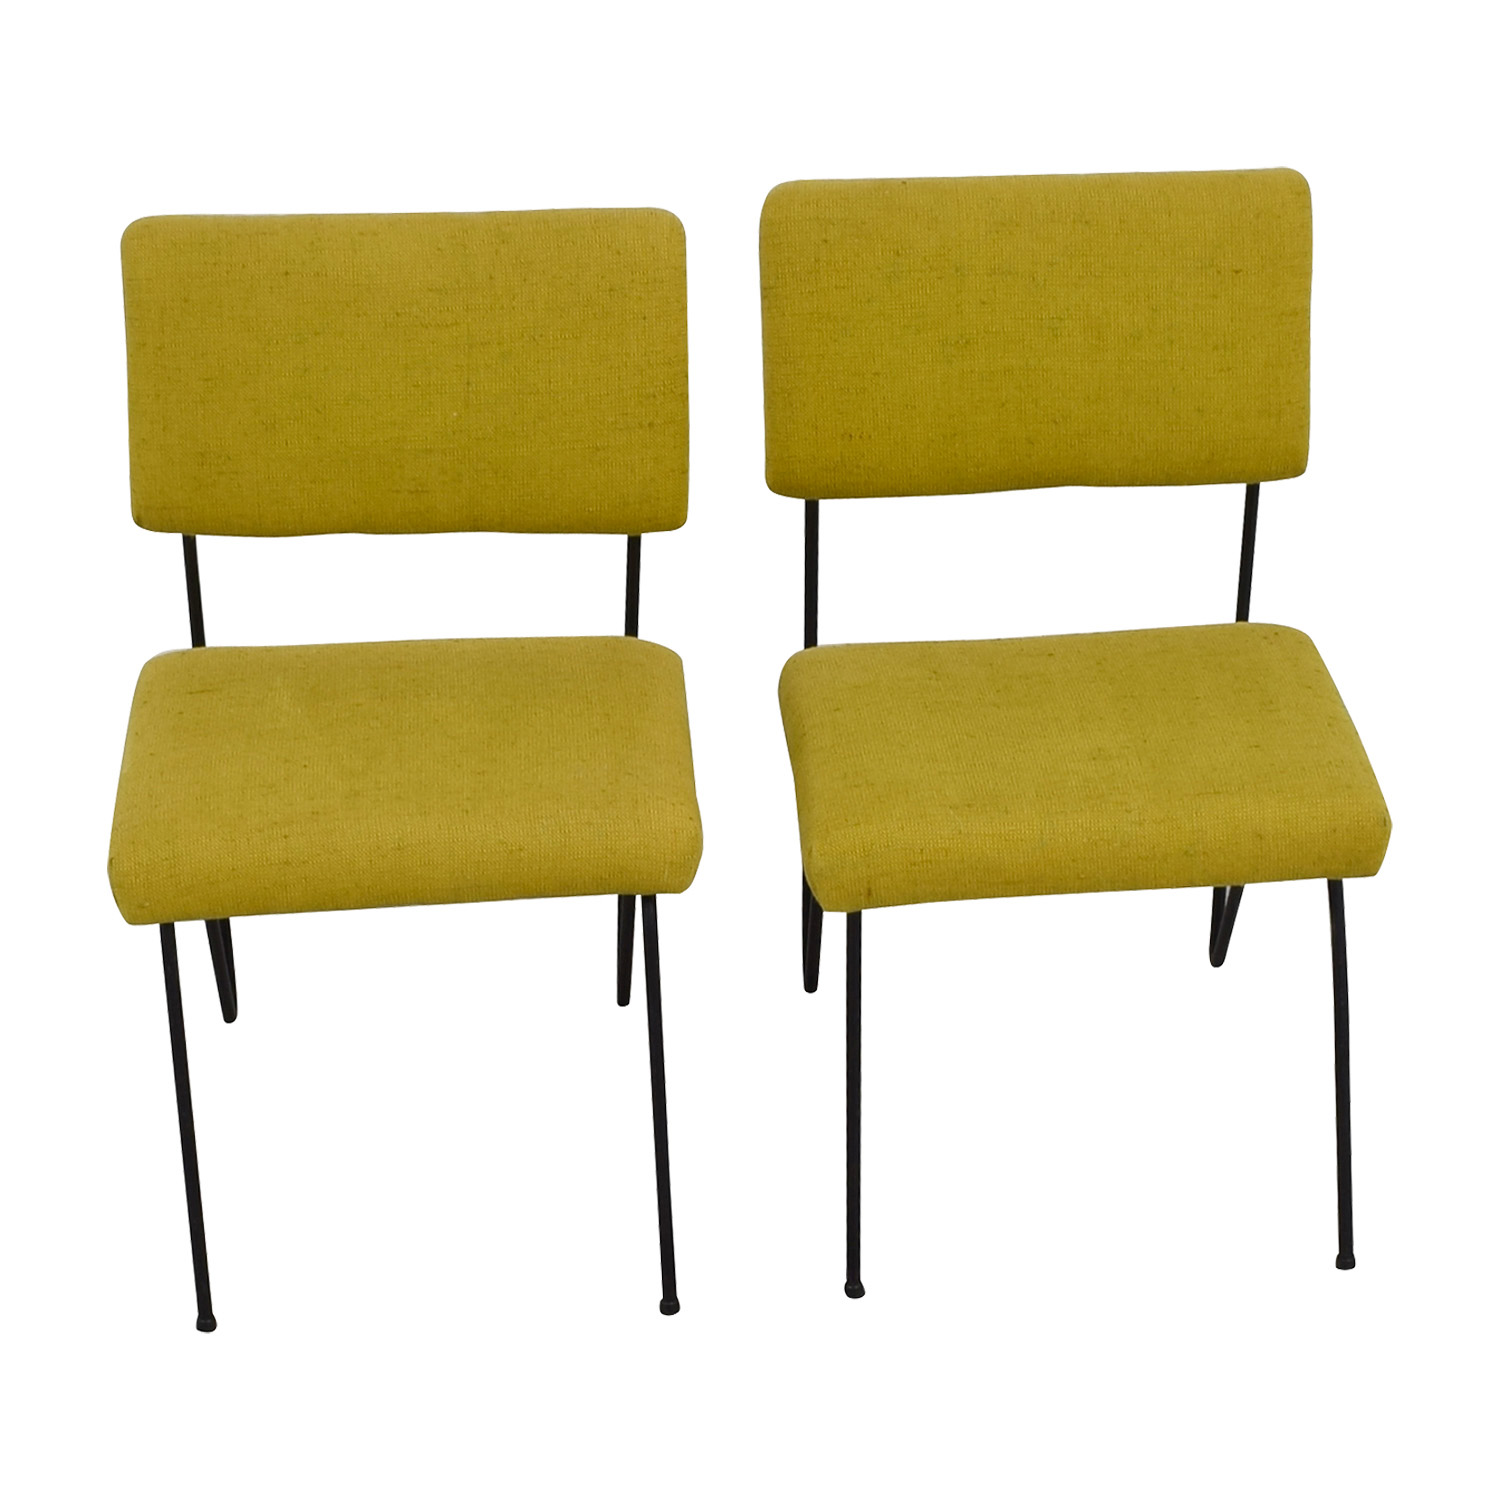 Furniture Masters Furniture Masters Green Fabric and Metal Chairs Dining Chairs